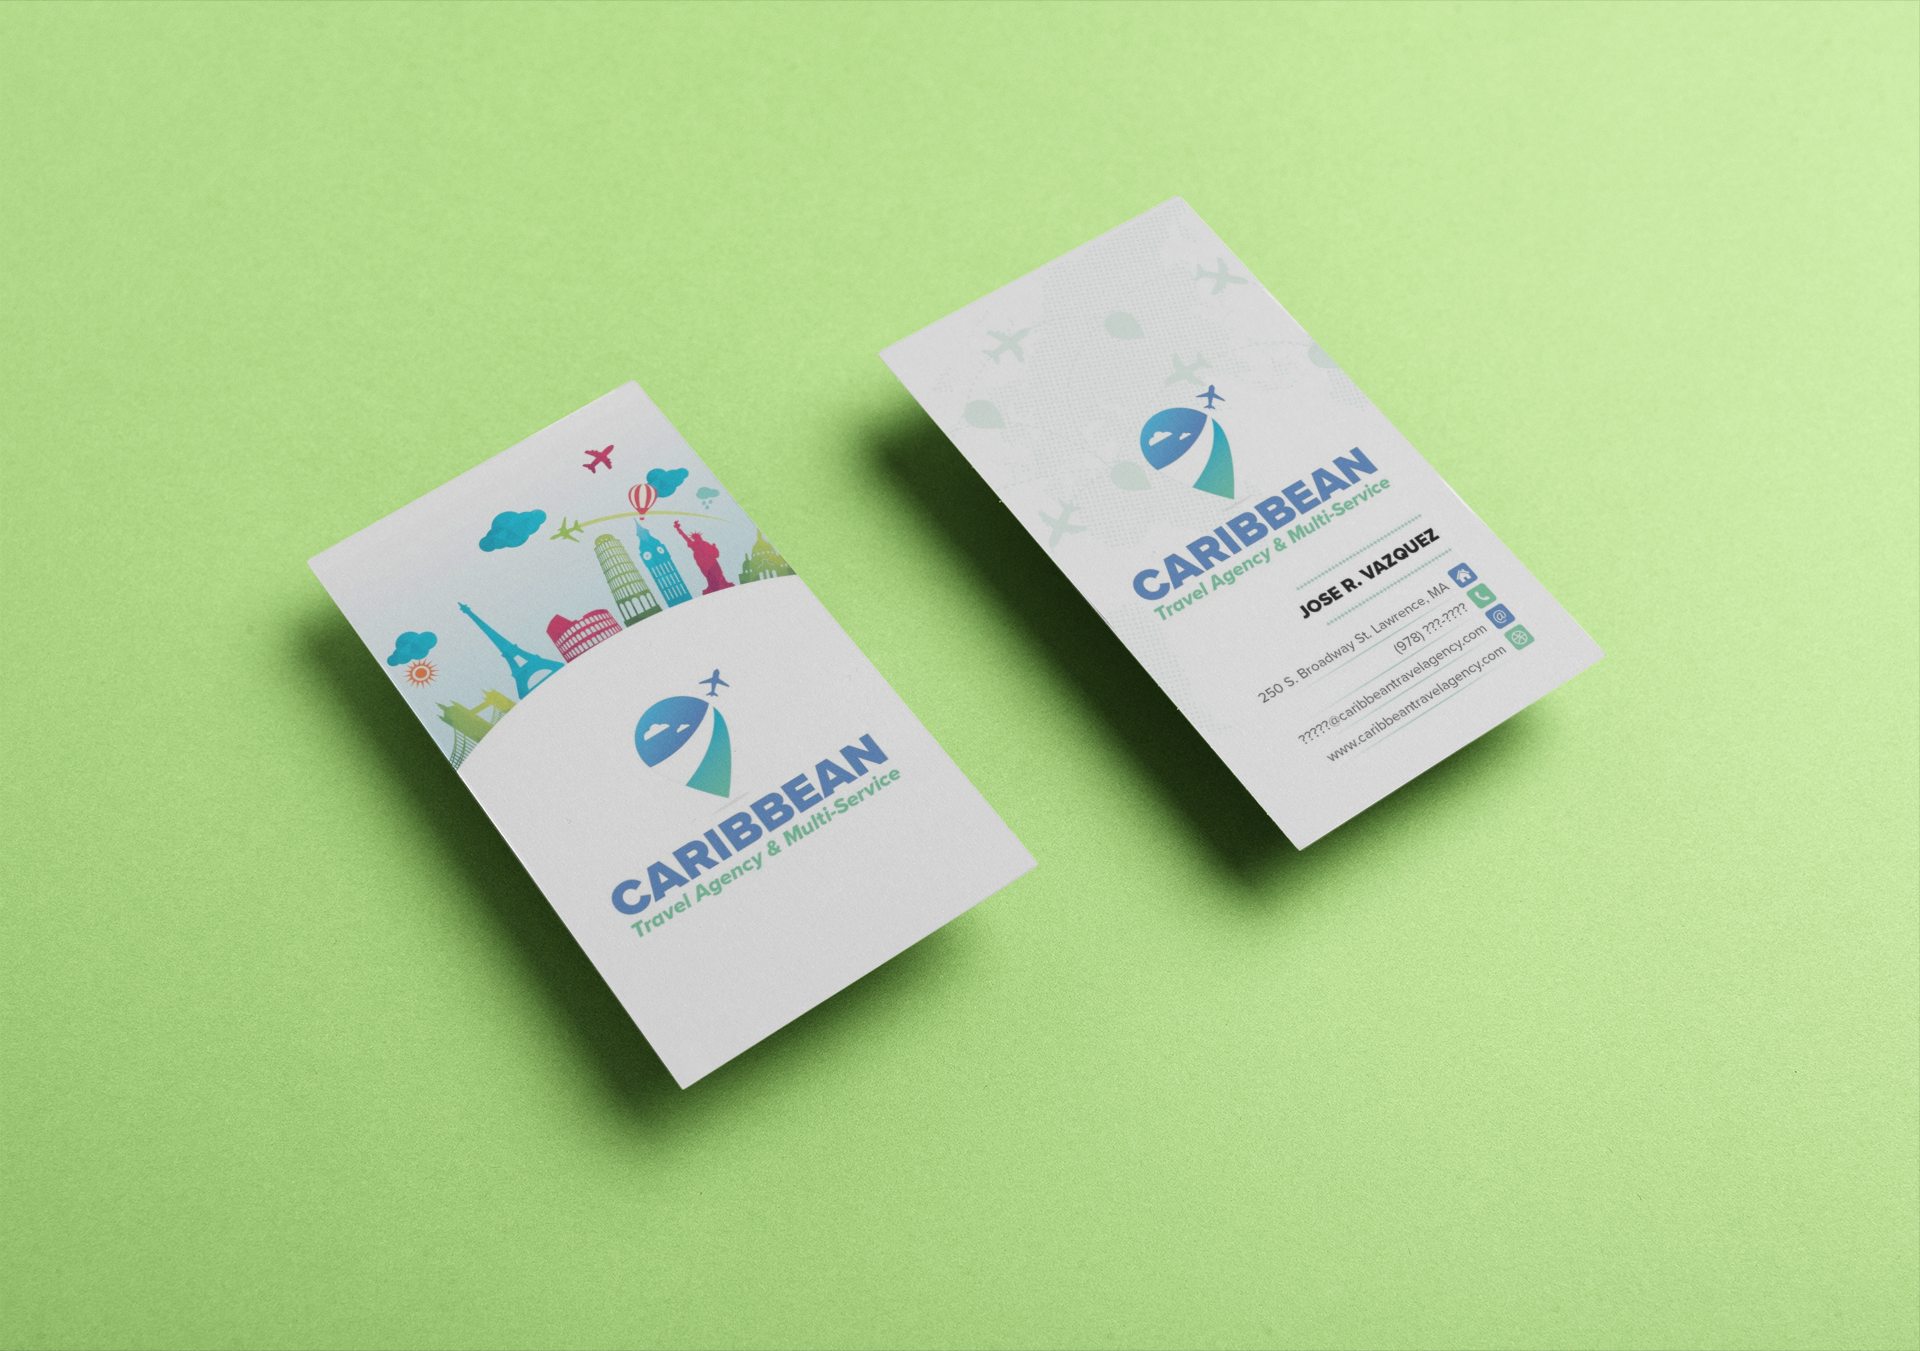 Left-Eye-Creations-vertical-business-cards-mockup-floating-over-a-solid-surface-21949.png